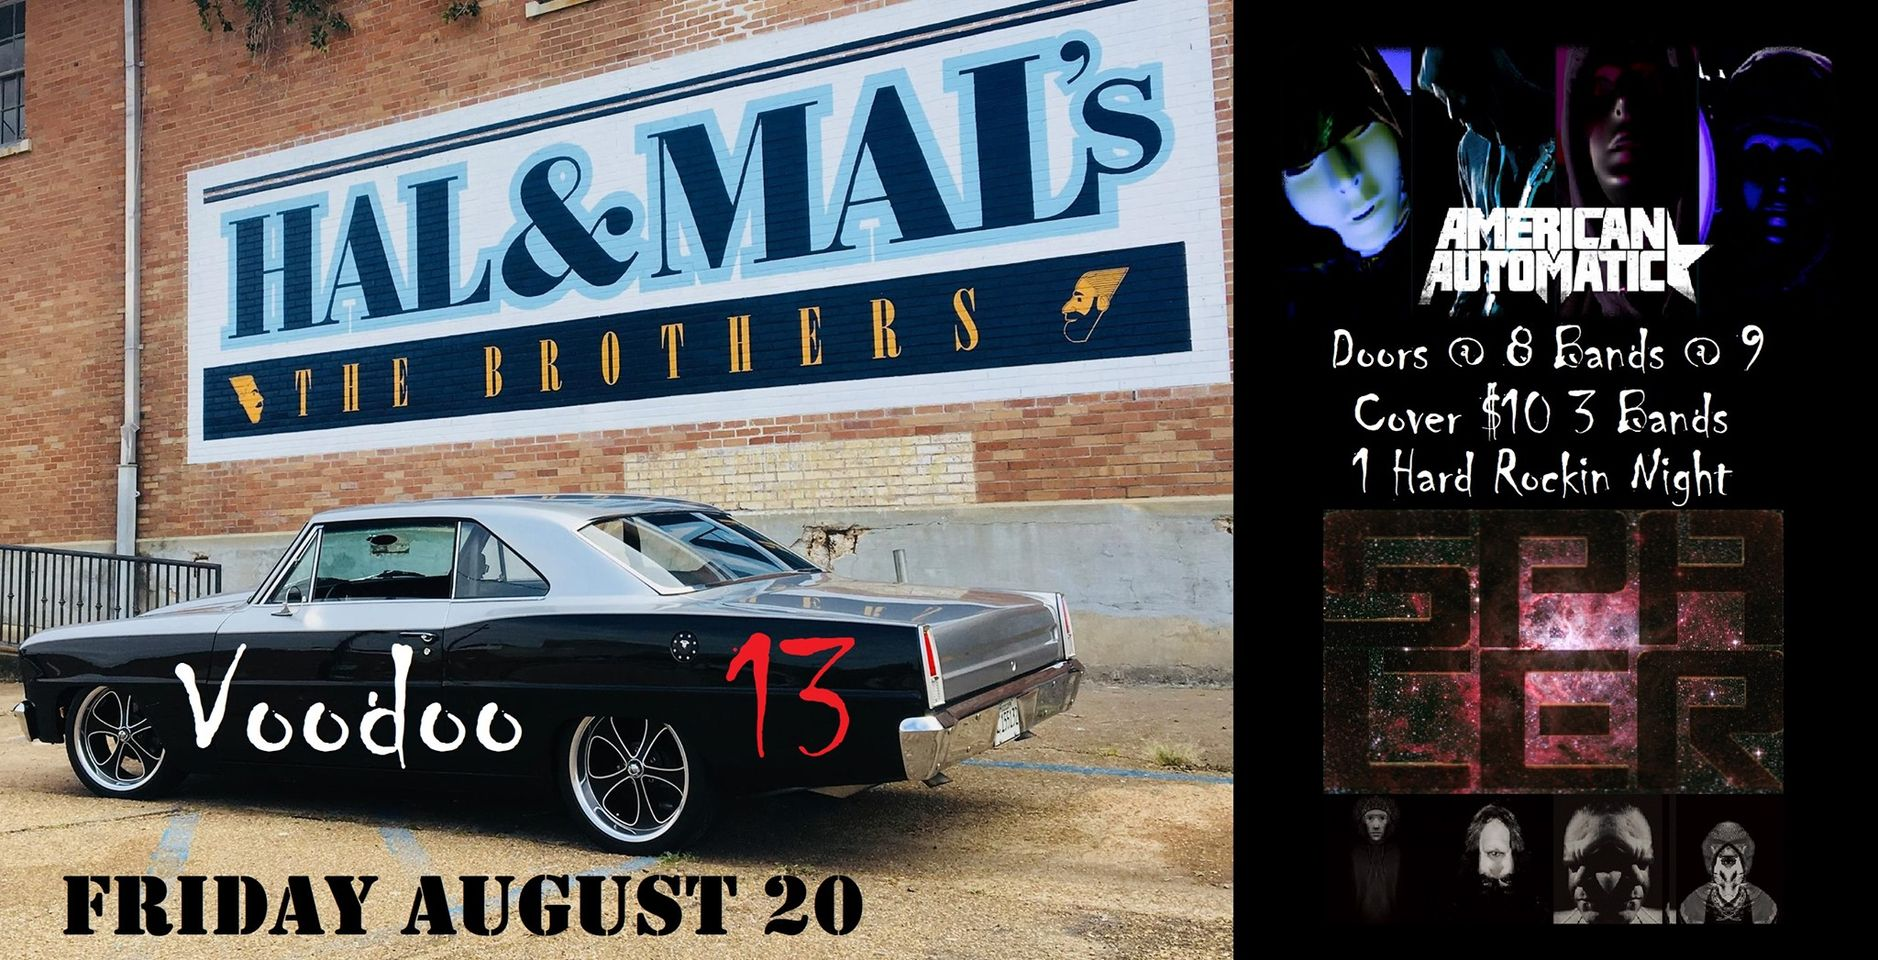 Hard Rock Night at Hal & Mals | Voodoo13 w/American Automatic + Spacer